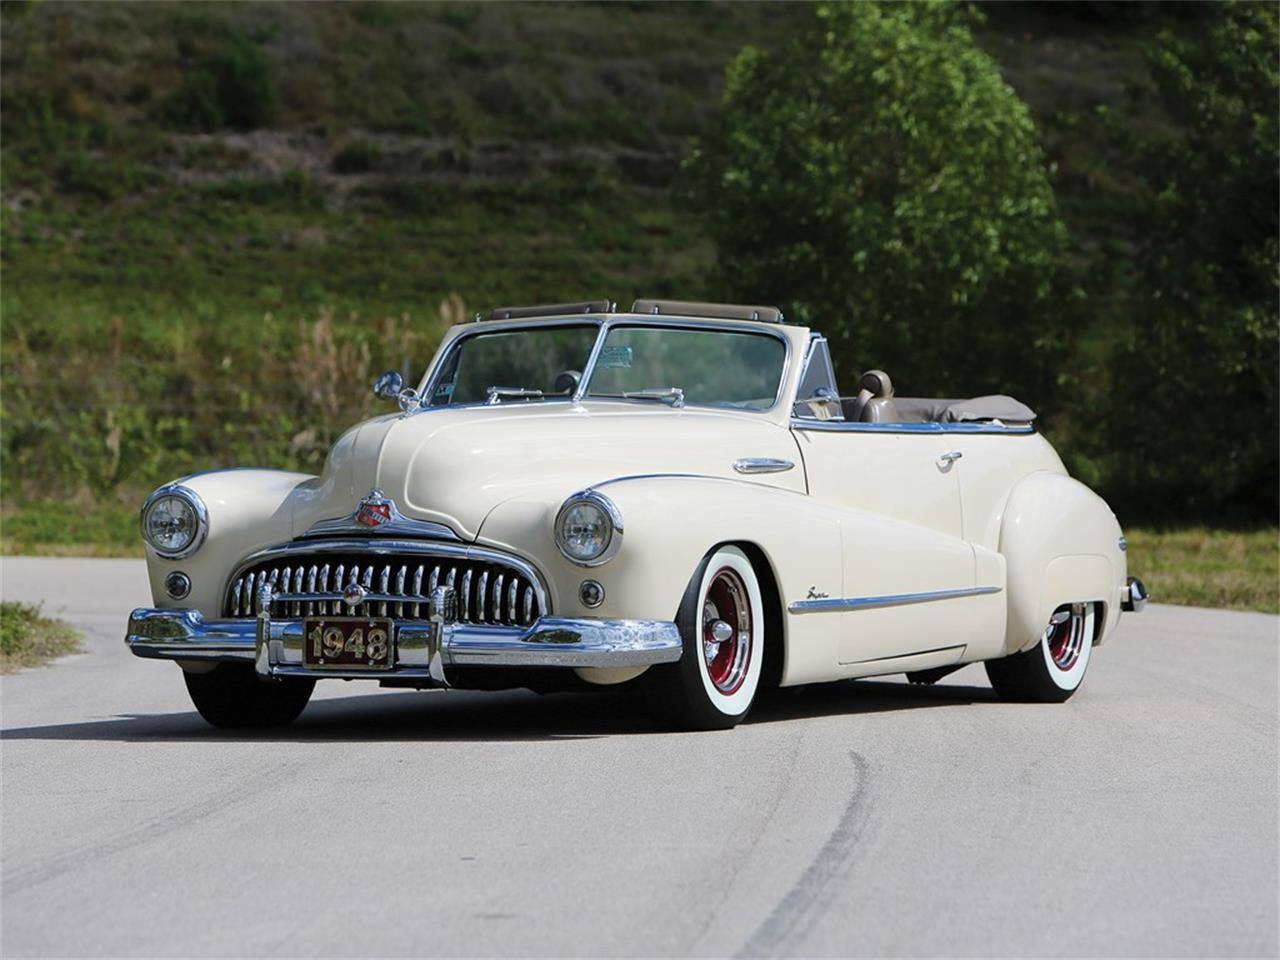 Large Picture Of Clic 48 Super Convertible Custom Auction Vehicle My23